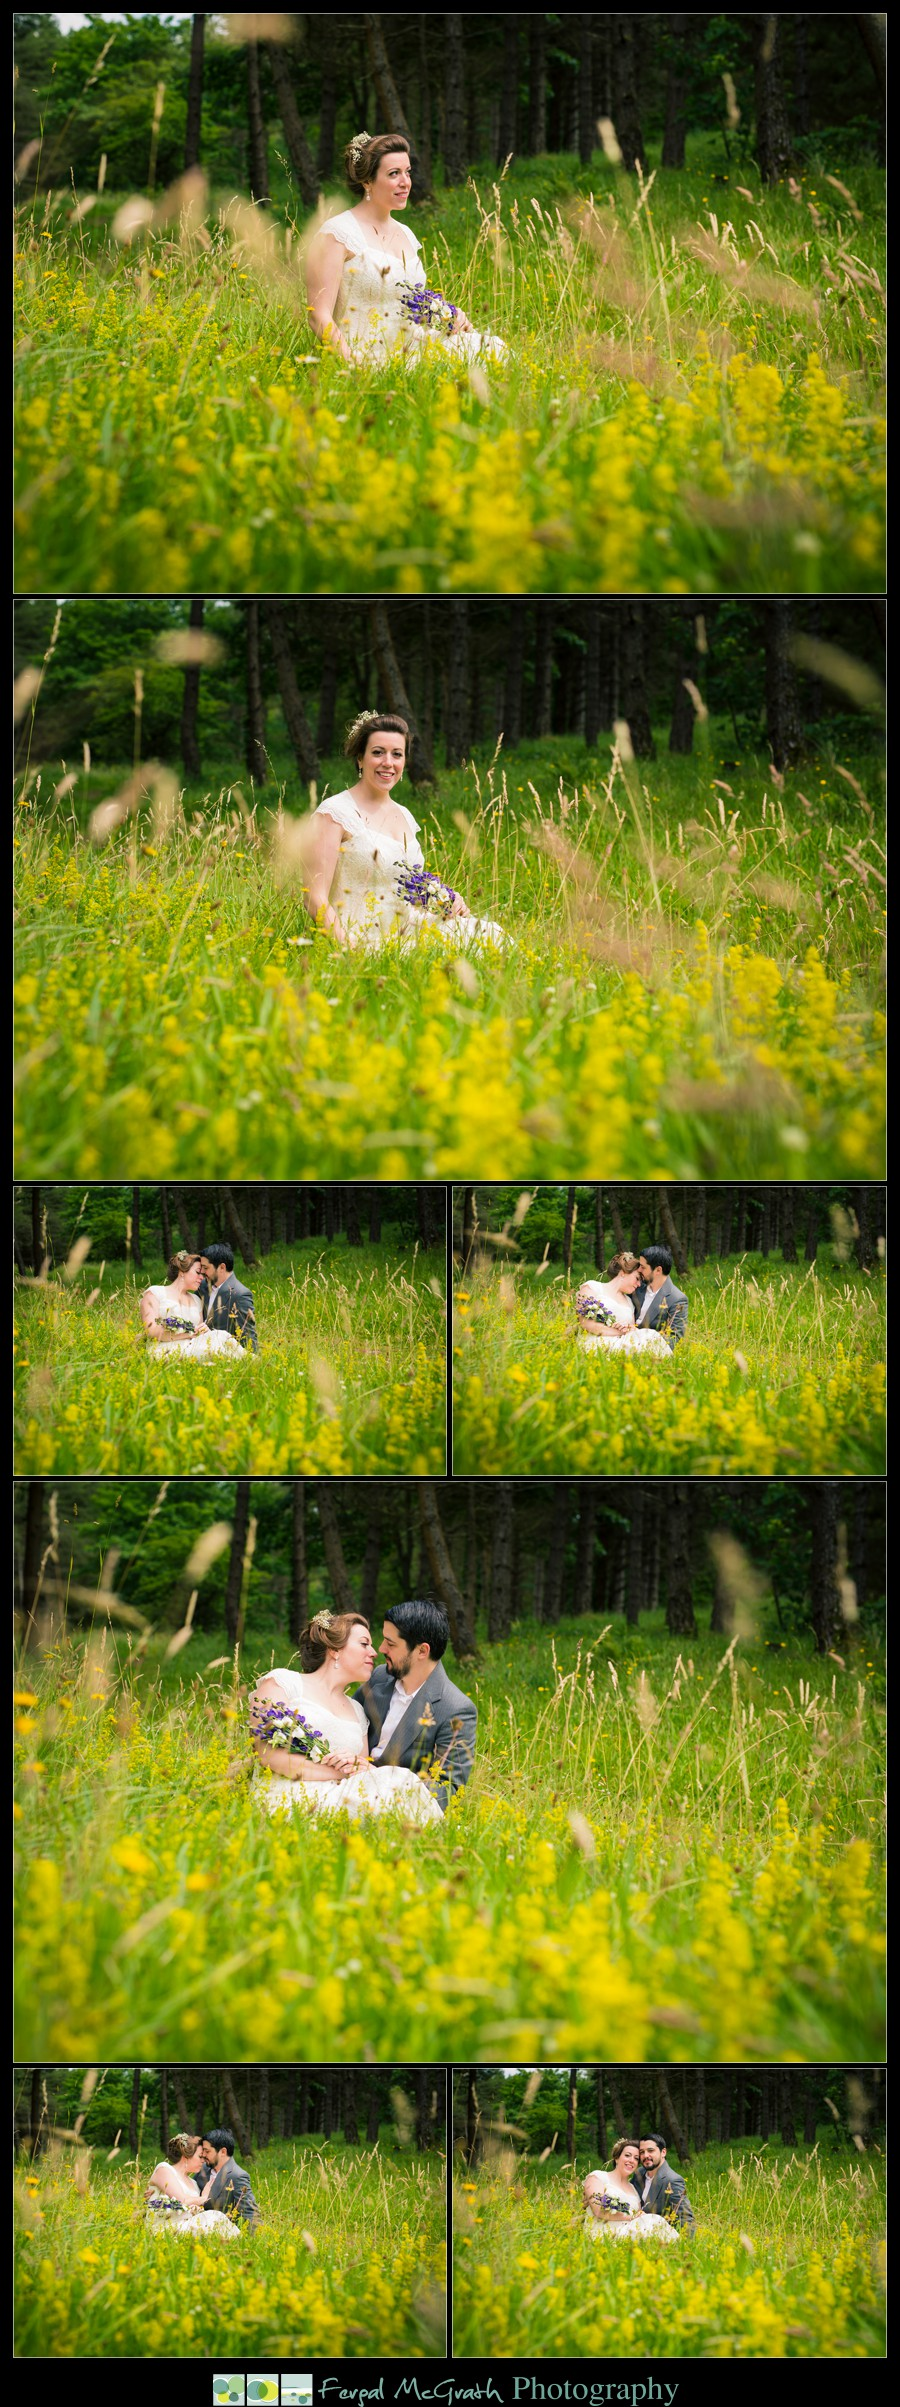 Donegal Wedding Photography bride and groom sit in a summer meadow for amazing wedding photos